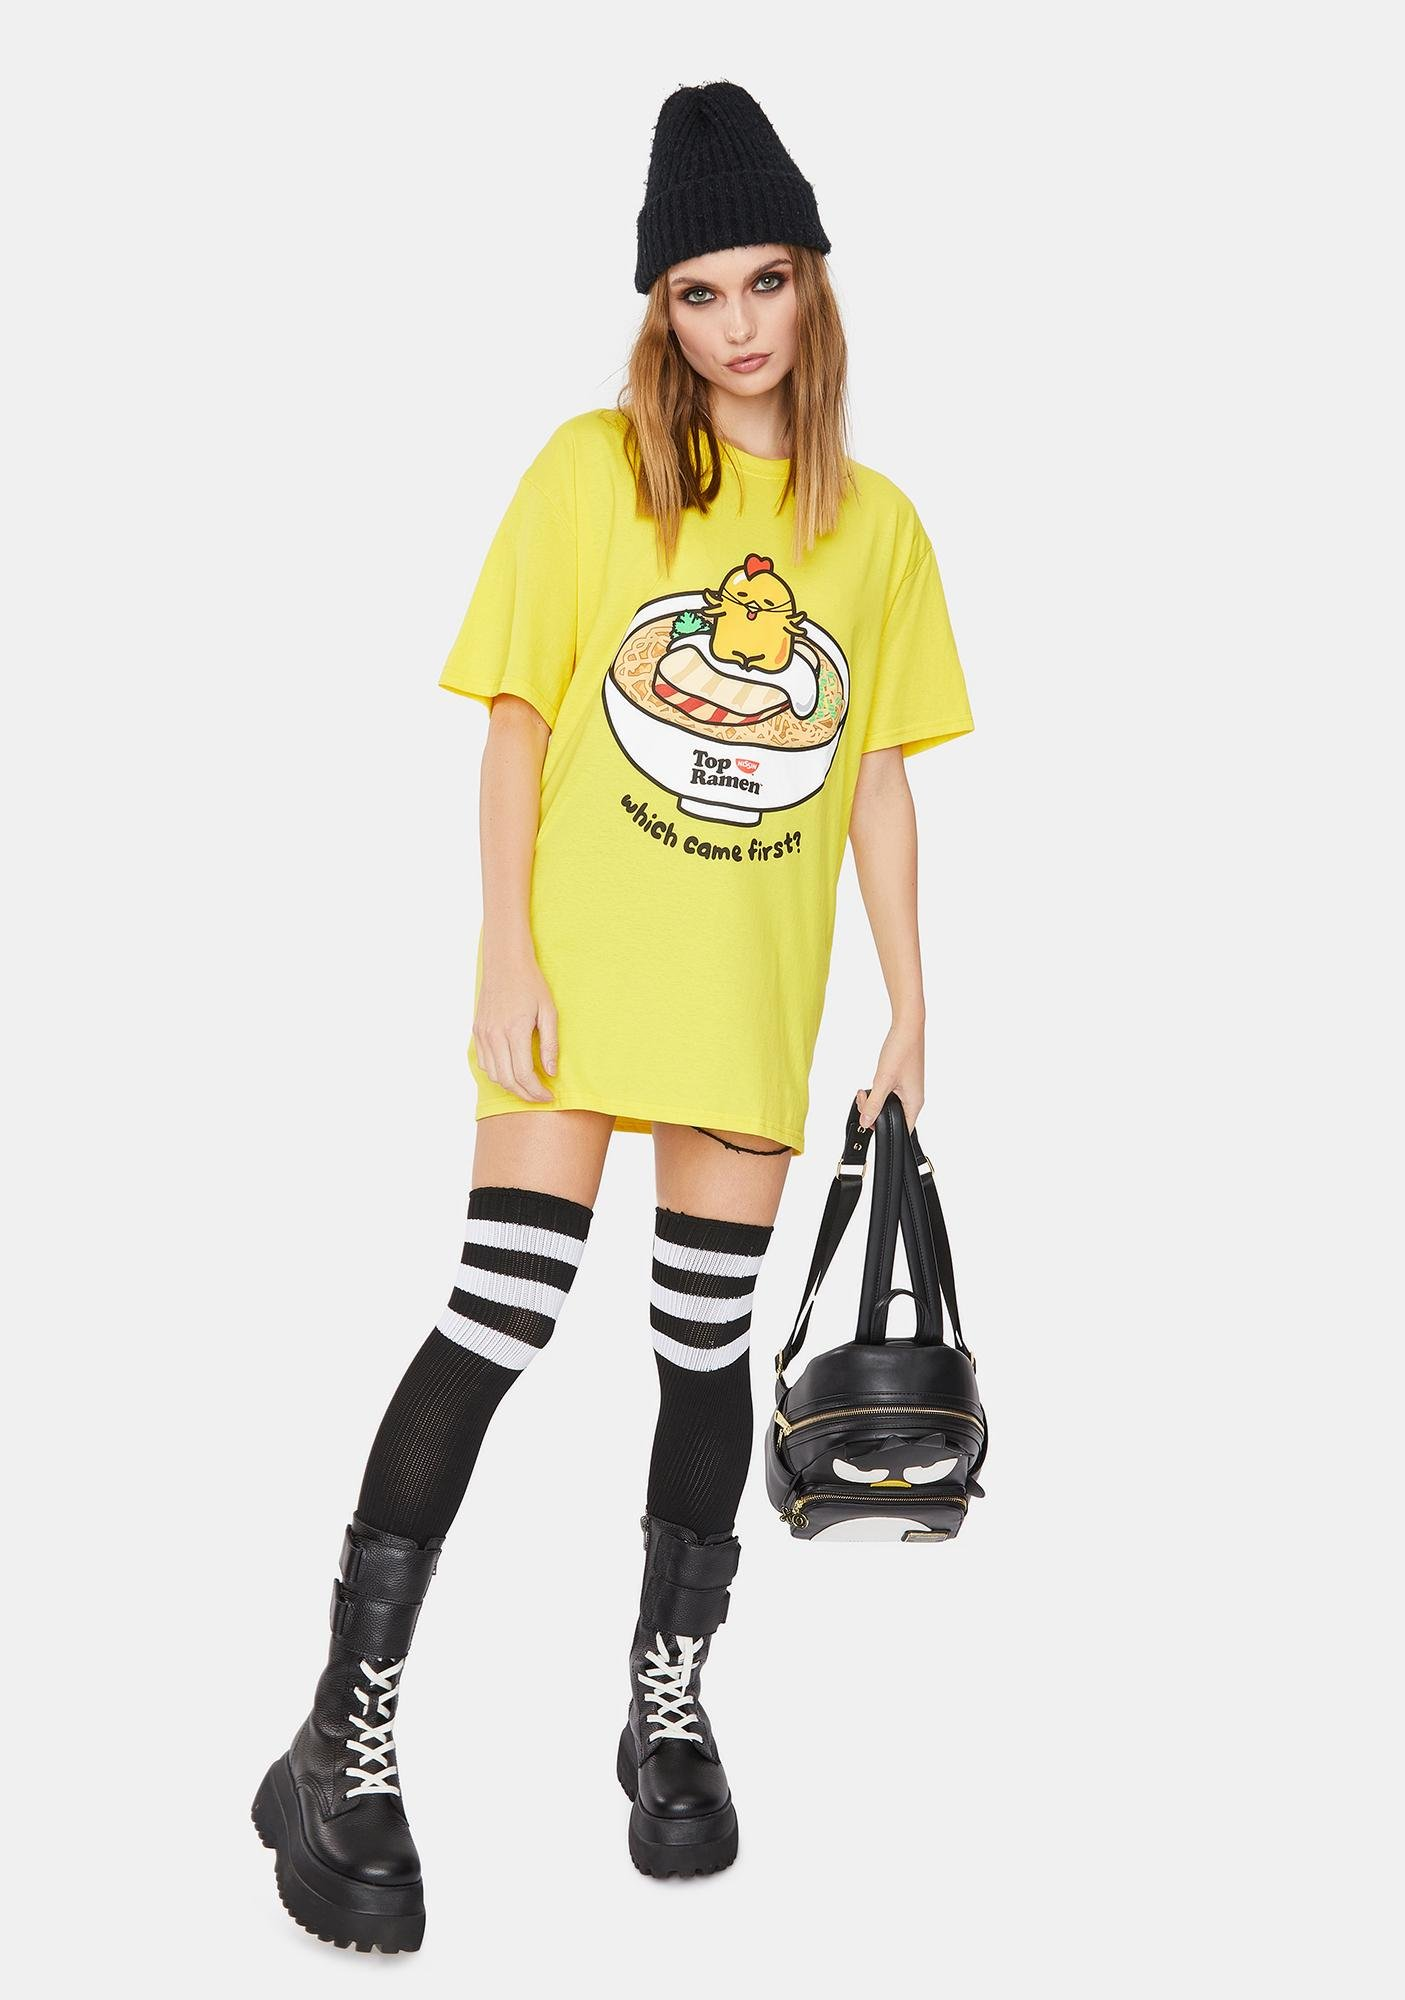 Gudetama x Top Ramen Chicken Or Egg Short Sleeve Tee